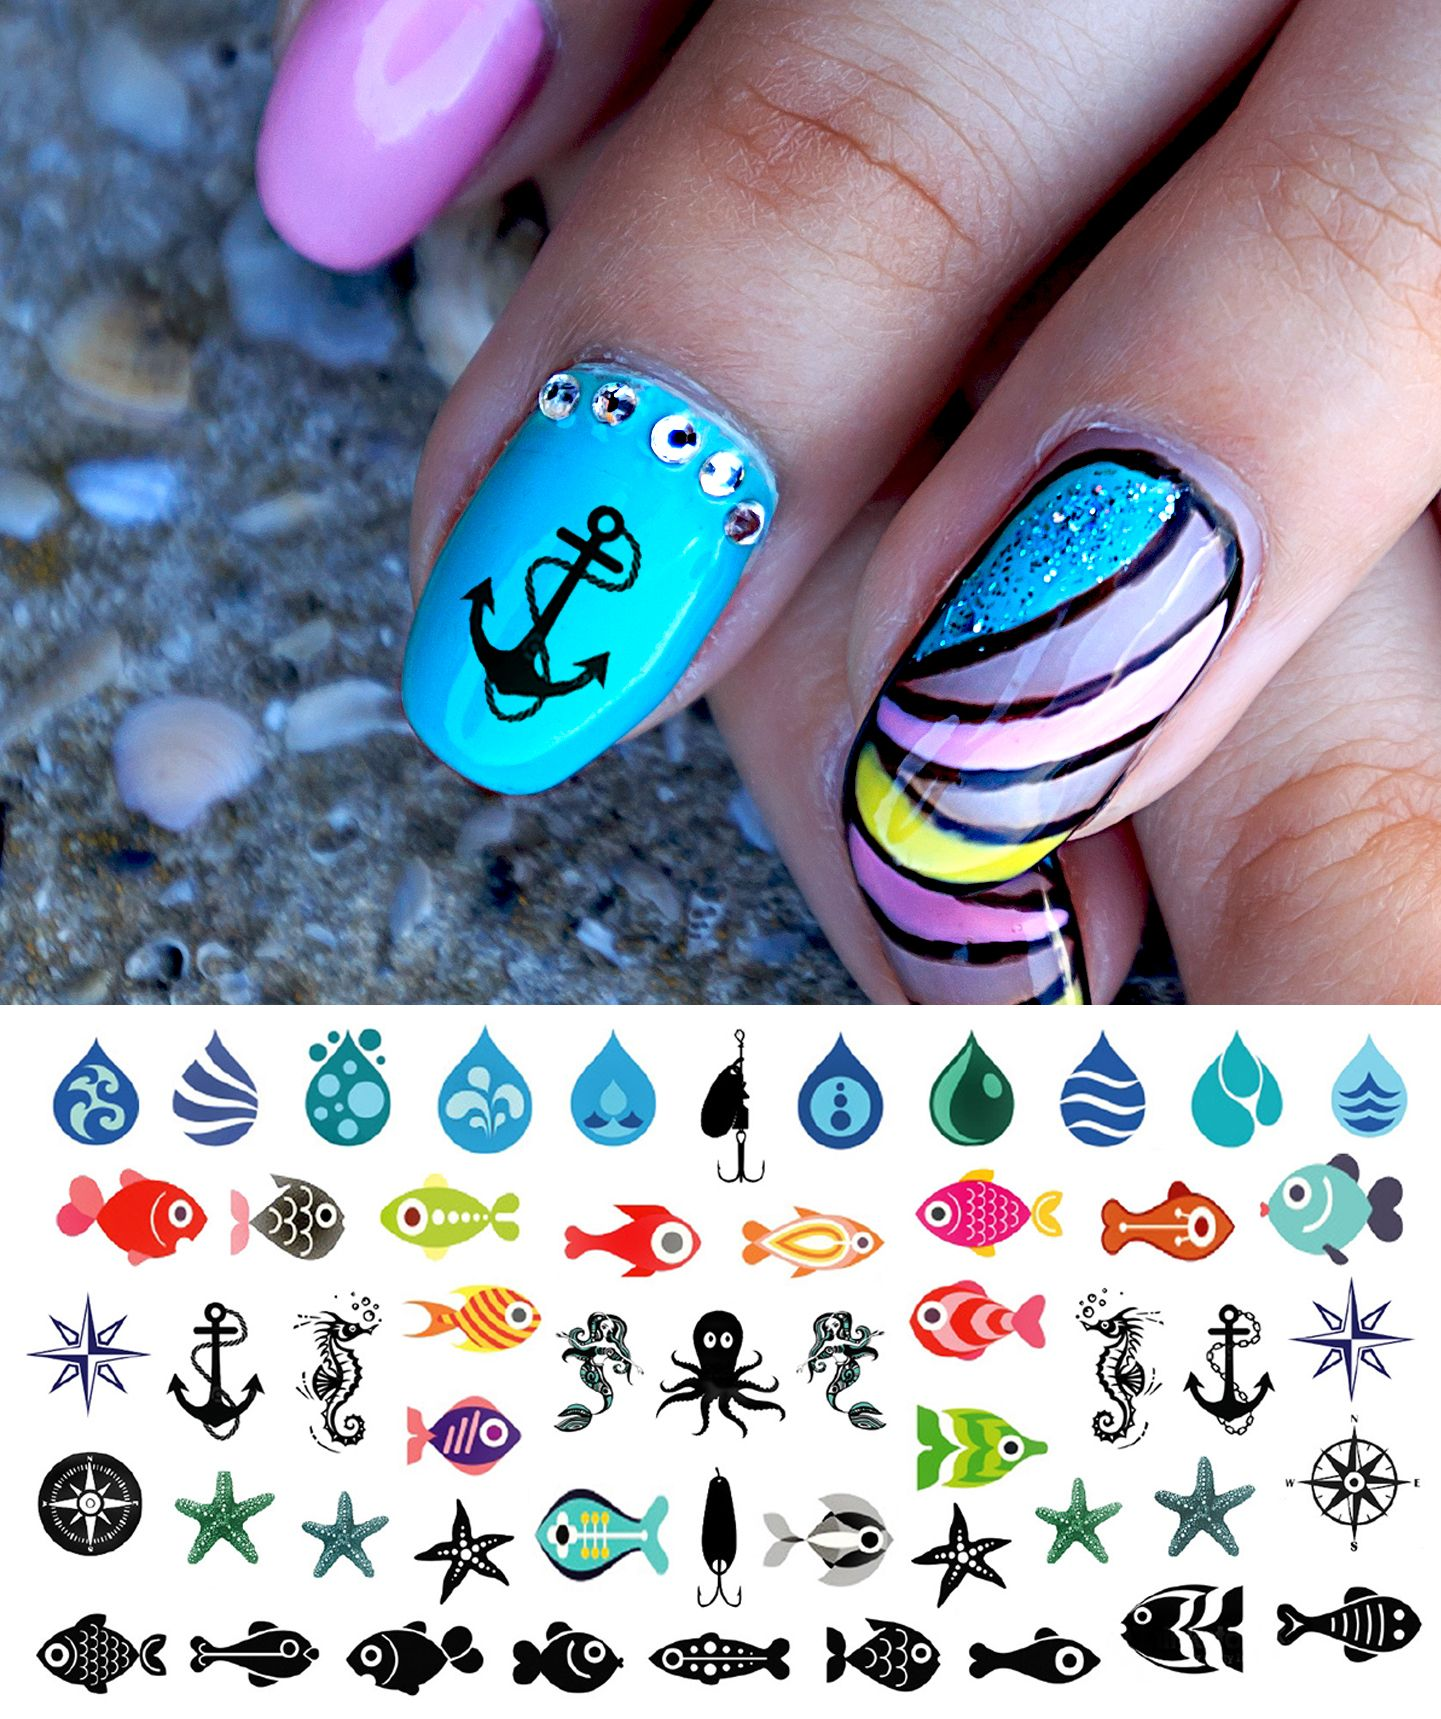 Pin by Moon Sugar Decals on Nautical Nail Art Decals  Pinterest